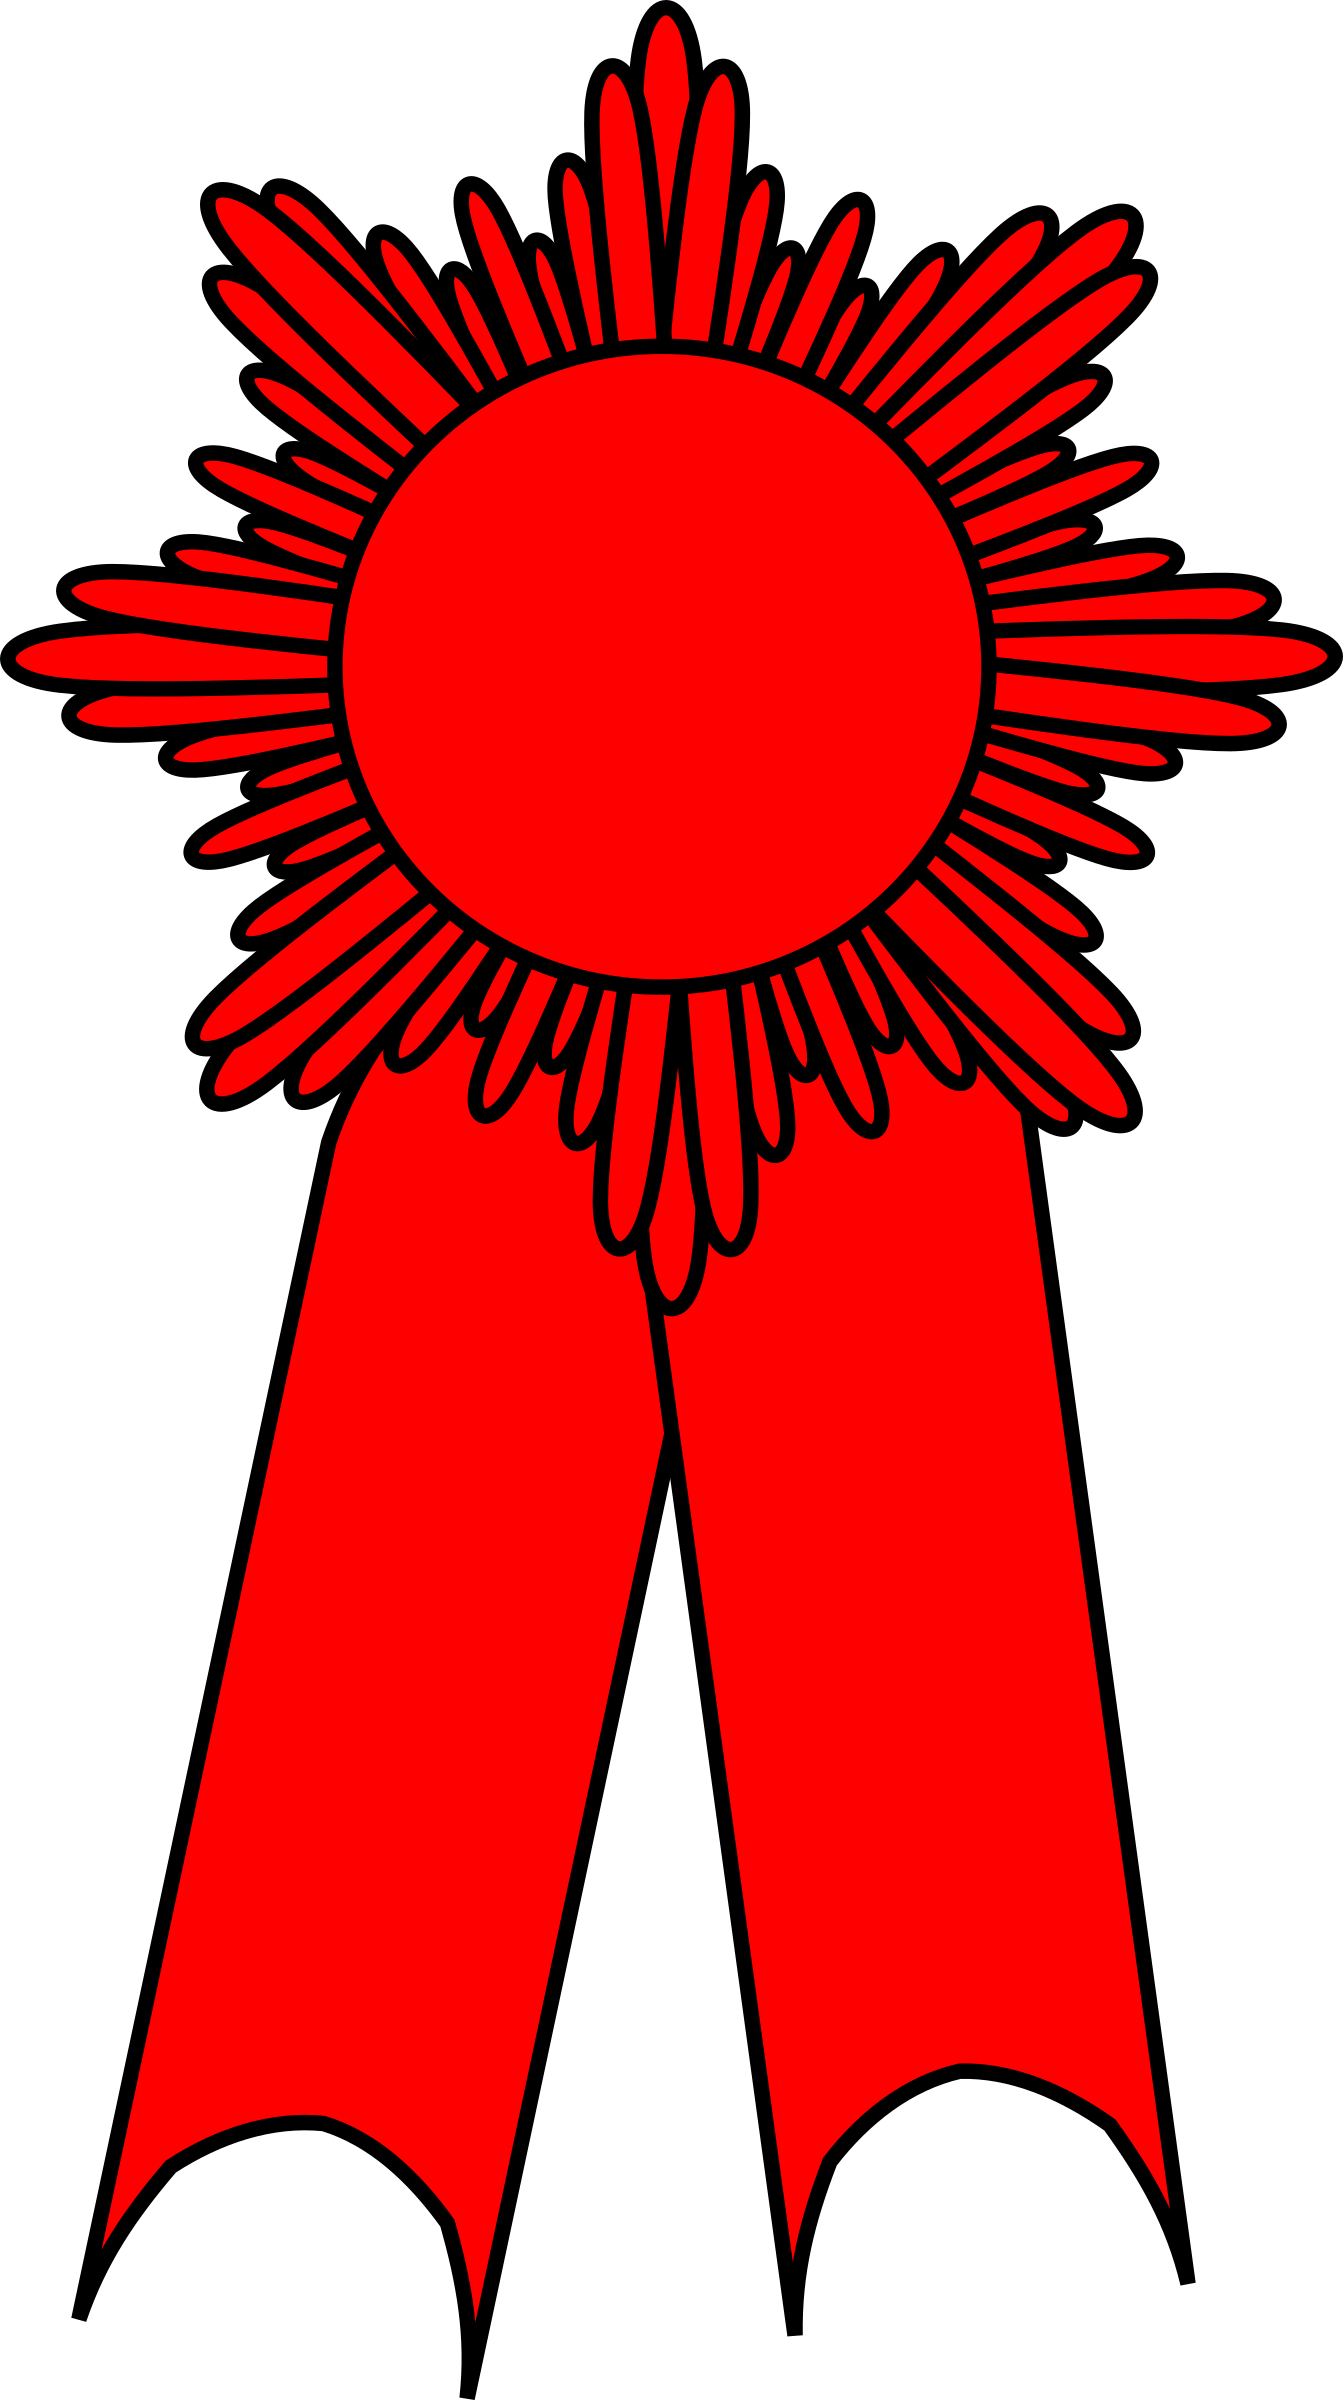 Graphic drawing of a red ribbon